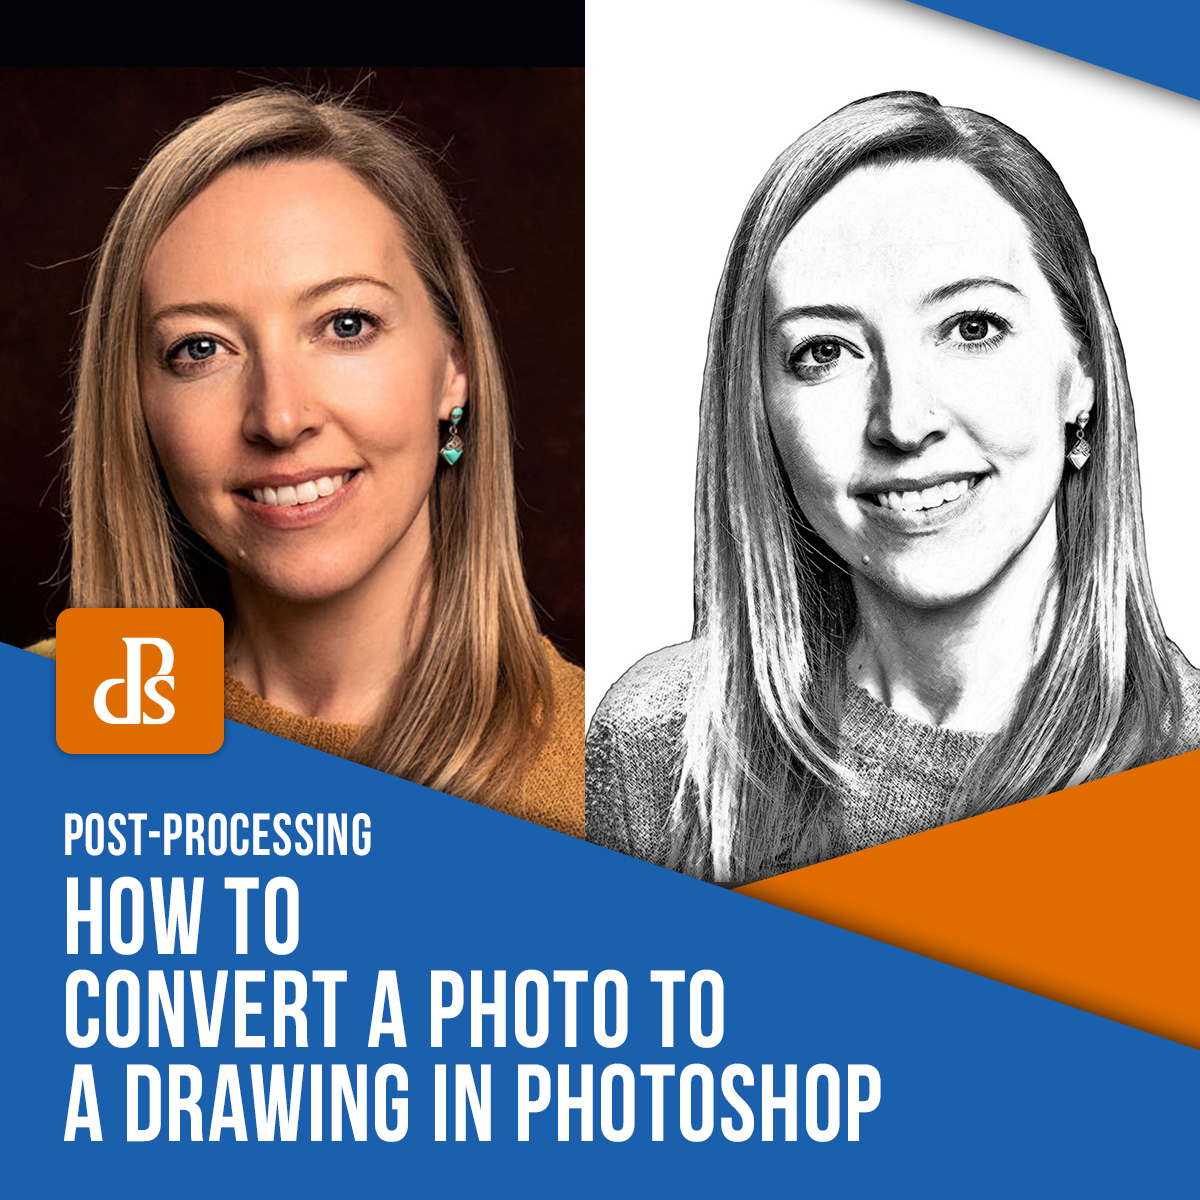 How To Convert A Photo To A Drawing In Photoshop